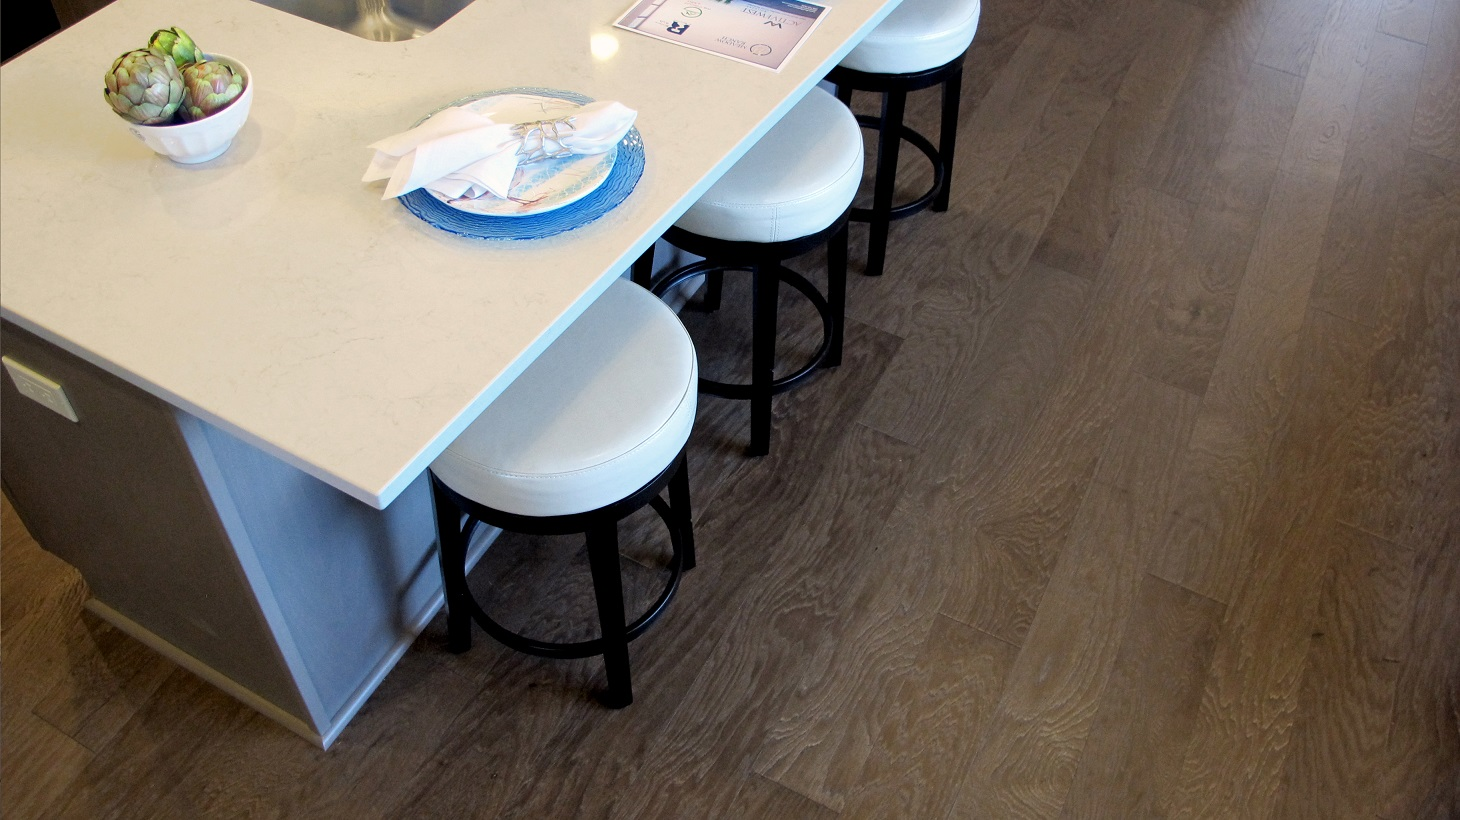 Urban loft shaw hardwood floor Long Island color engineered matte finish modern stylish island bar stools quartz counter tops white light bright interior design loft townhouse